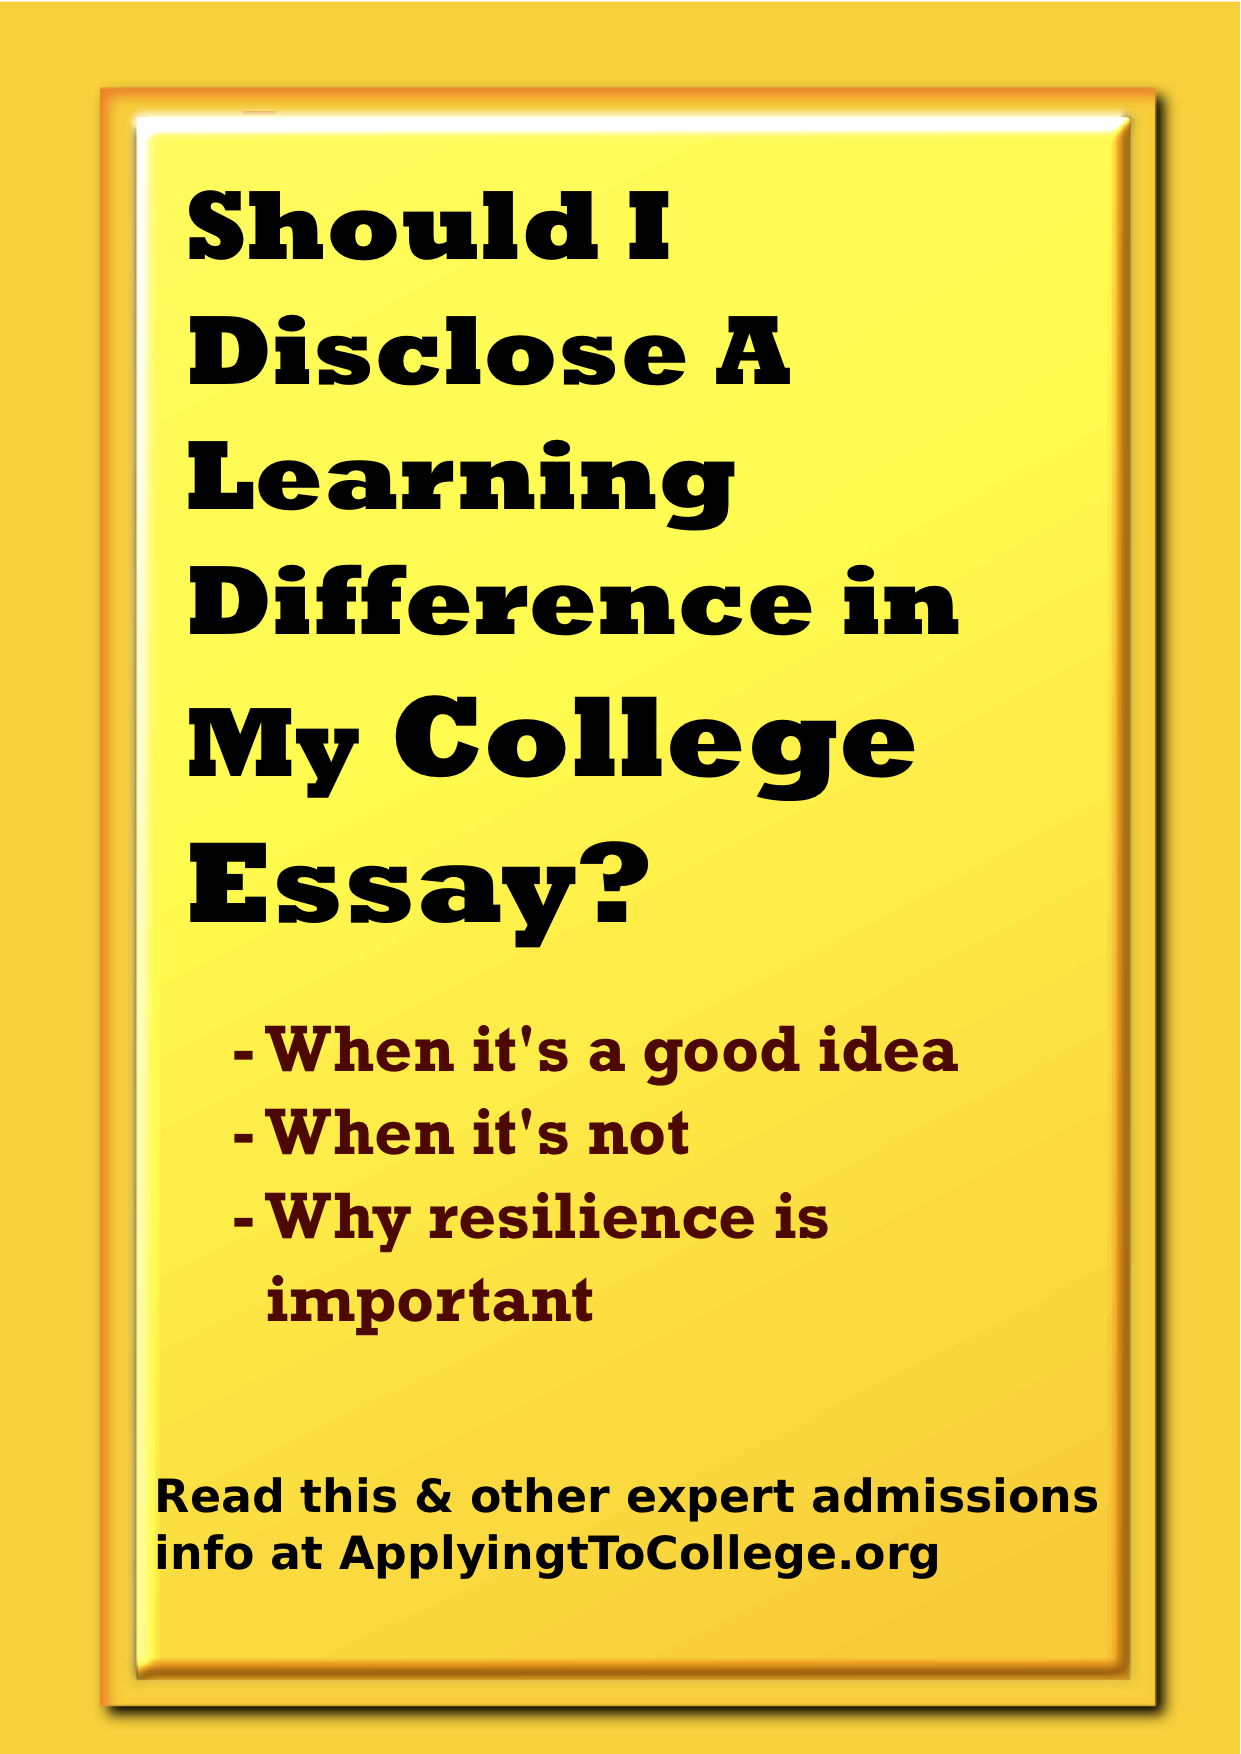 college essay help in nj Why ramapo at ramapo college, you are a name and not a number as the smallest public college in new jersey, our size allows us to commit to developing each student on a personal level, pushing students outside of their comfort zone and engaging them on curricular and co-curricular levels in such an intimate environment, [.